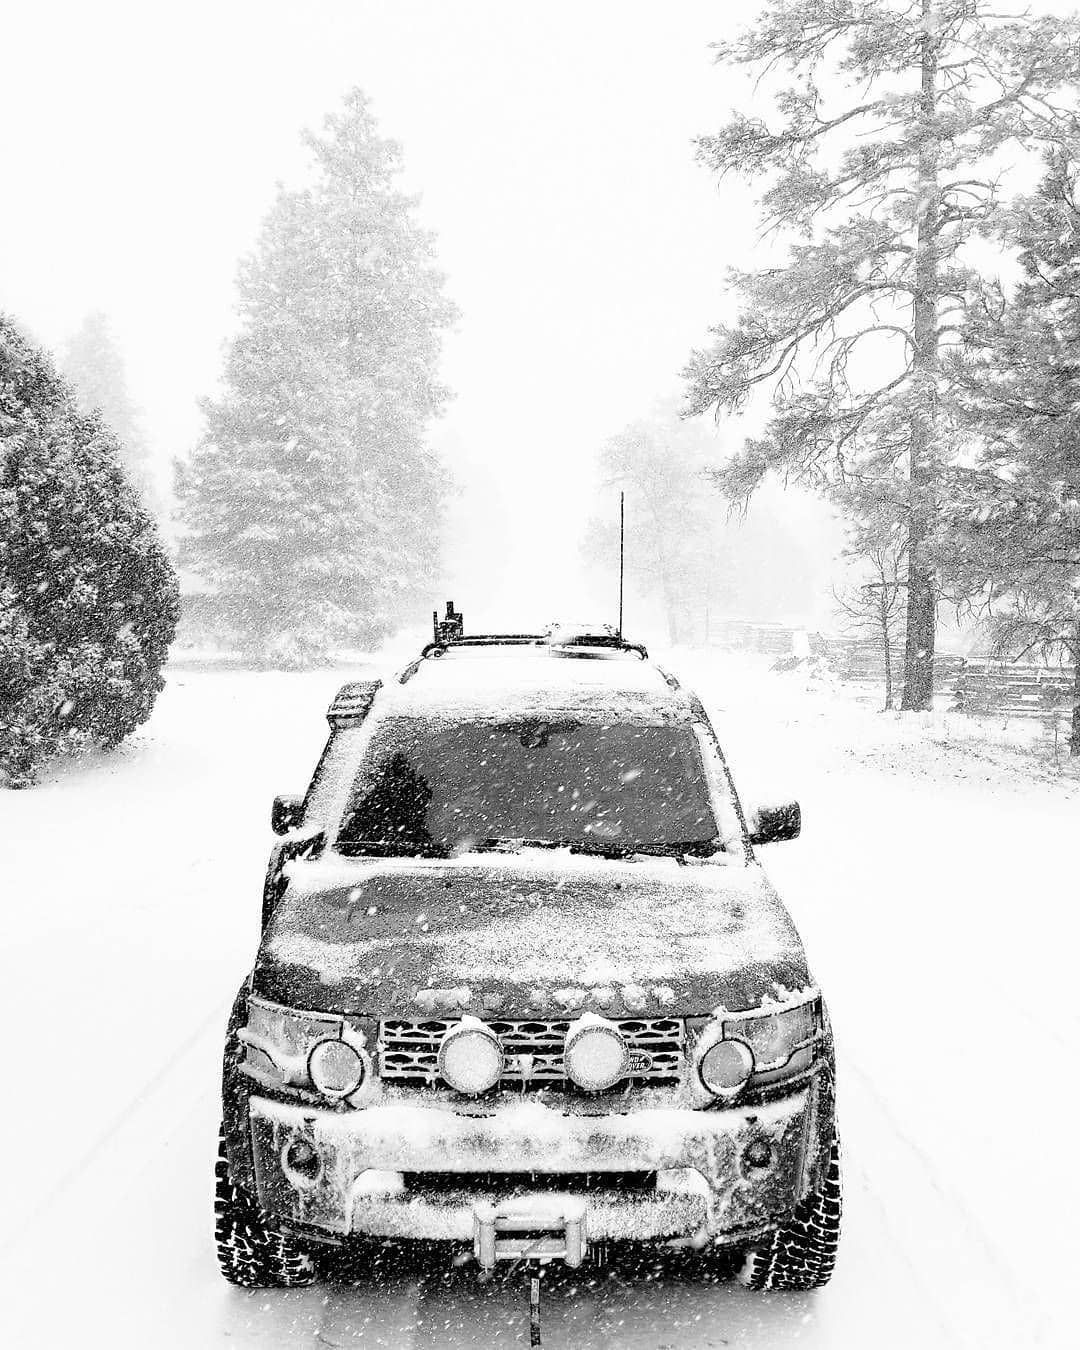 64 Best Images About Land Rover Lr4 On Pinterest: Pin από το χρήστη Takis στον πίνακα DISCOVERY